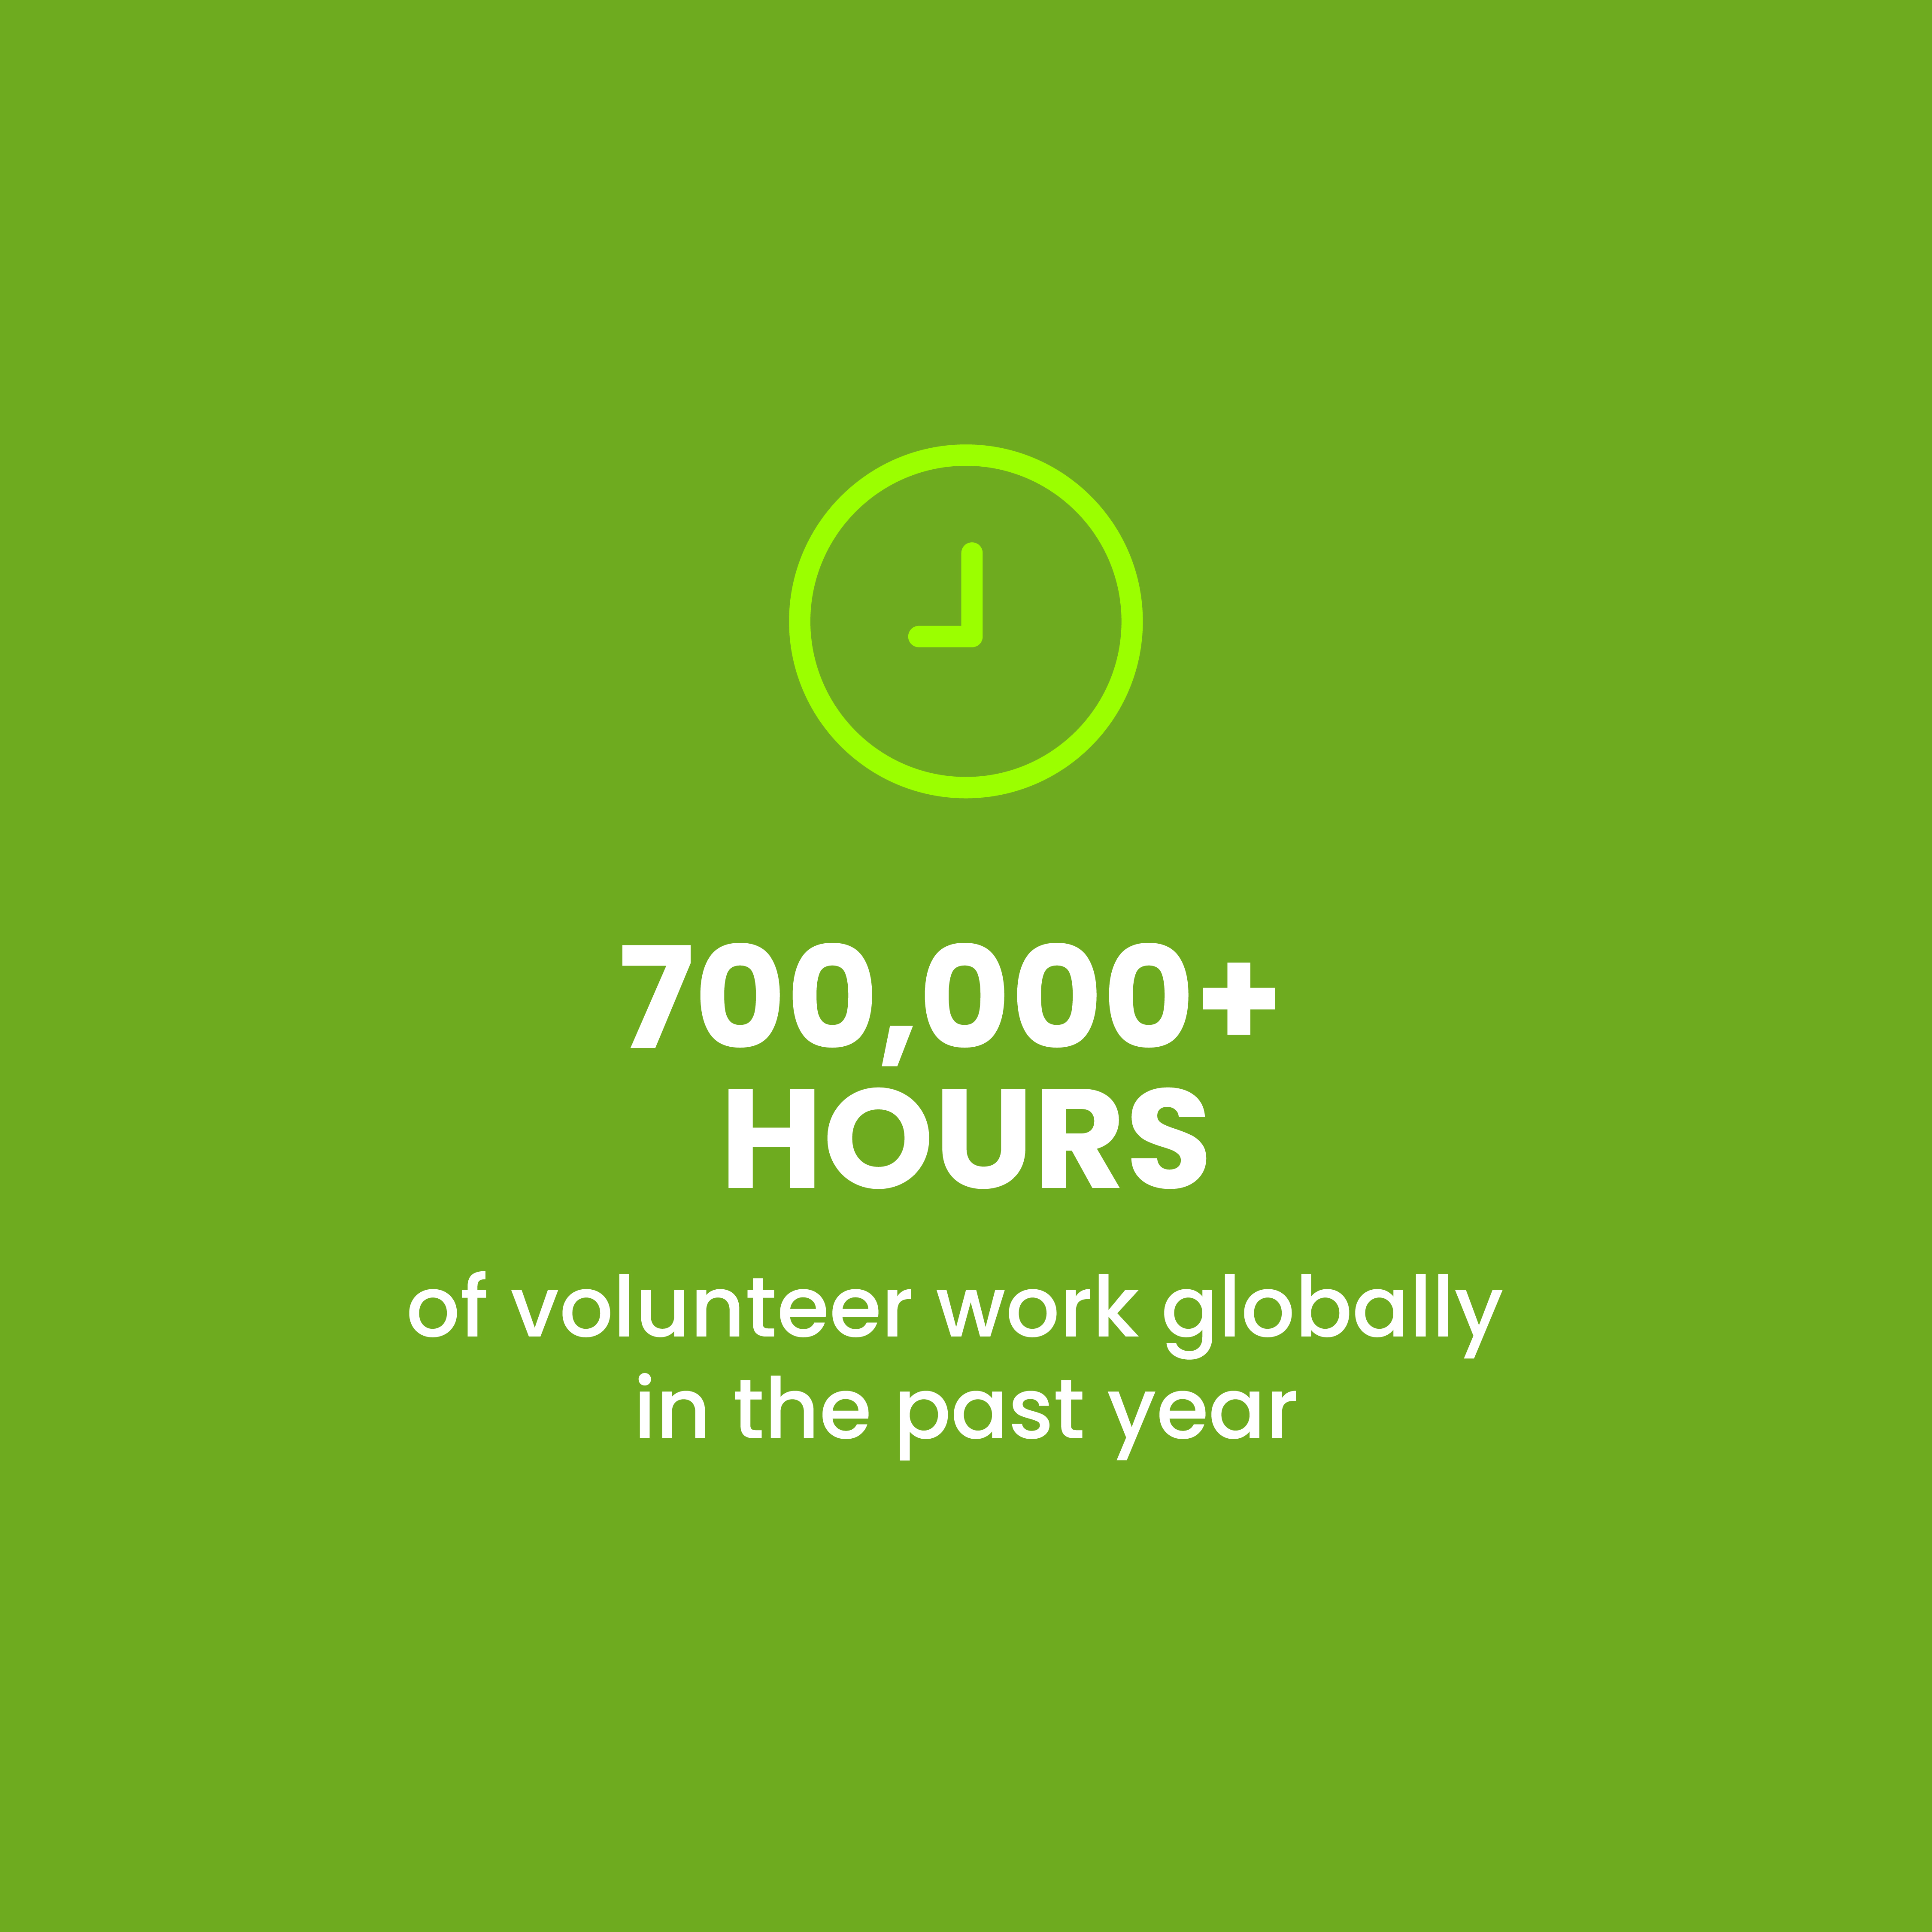 700,000+ hours of volunteer work globally in the past year.